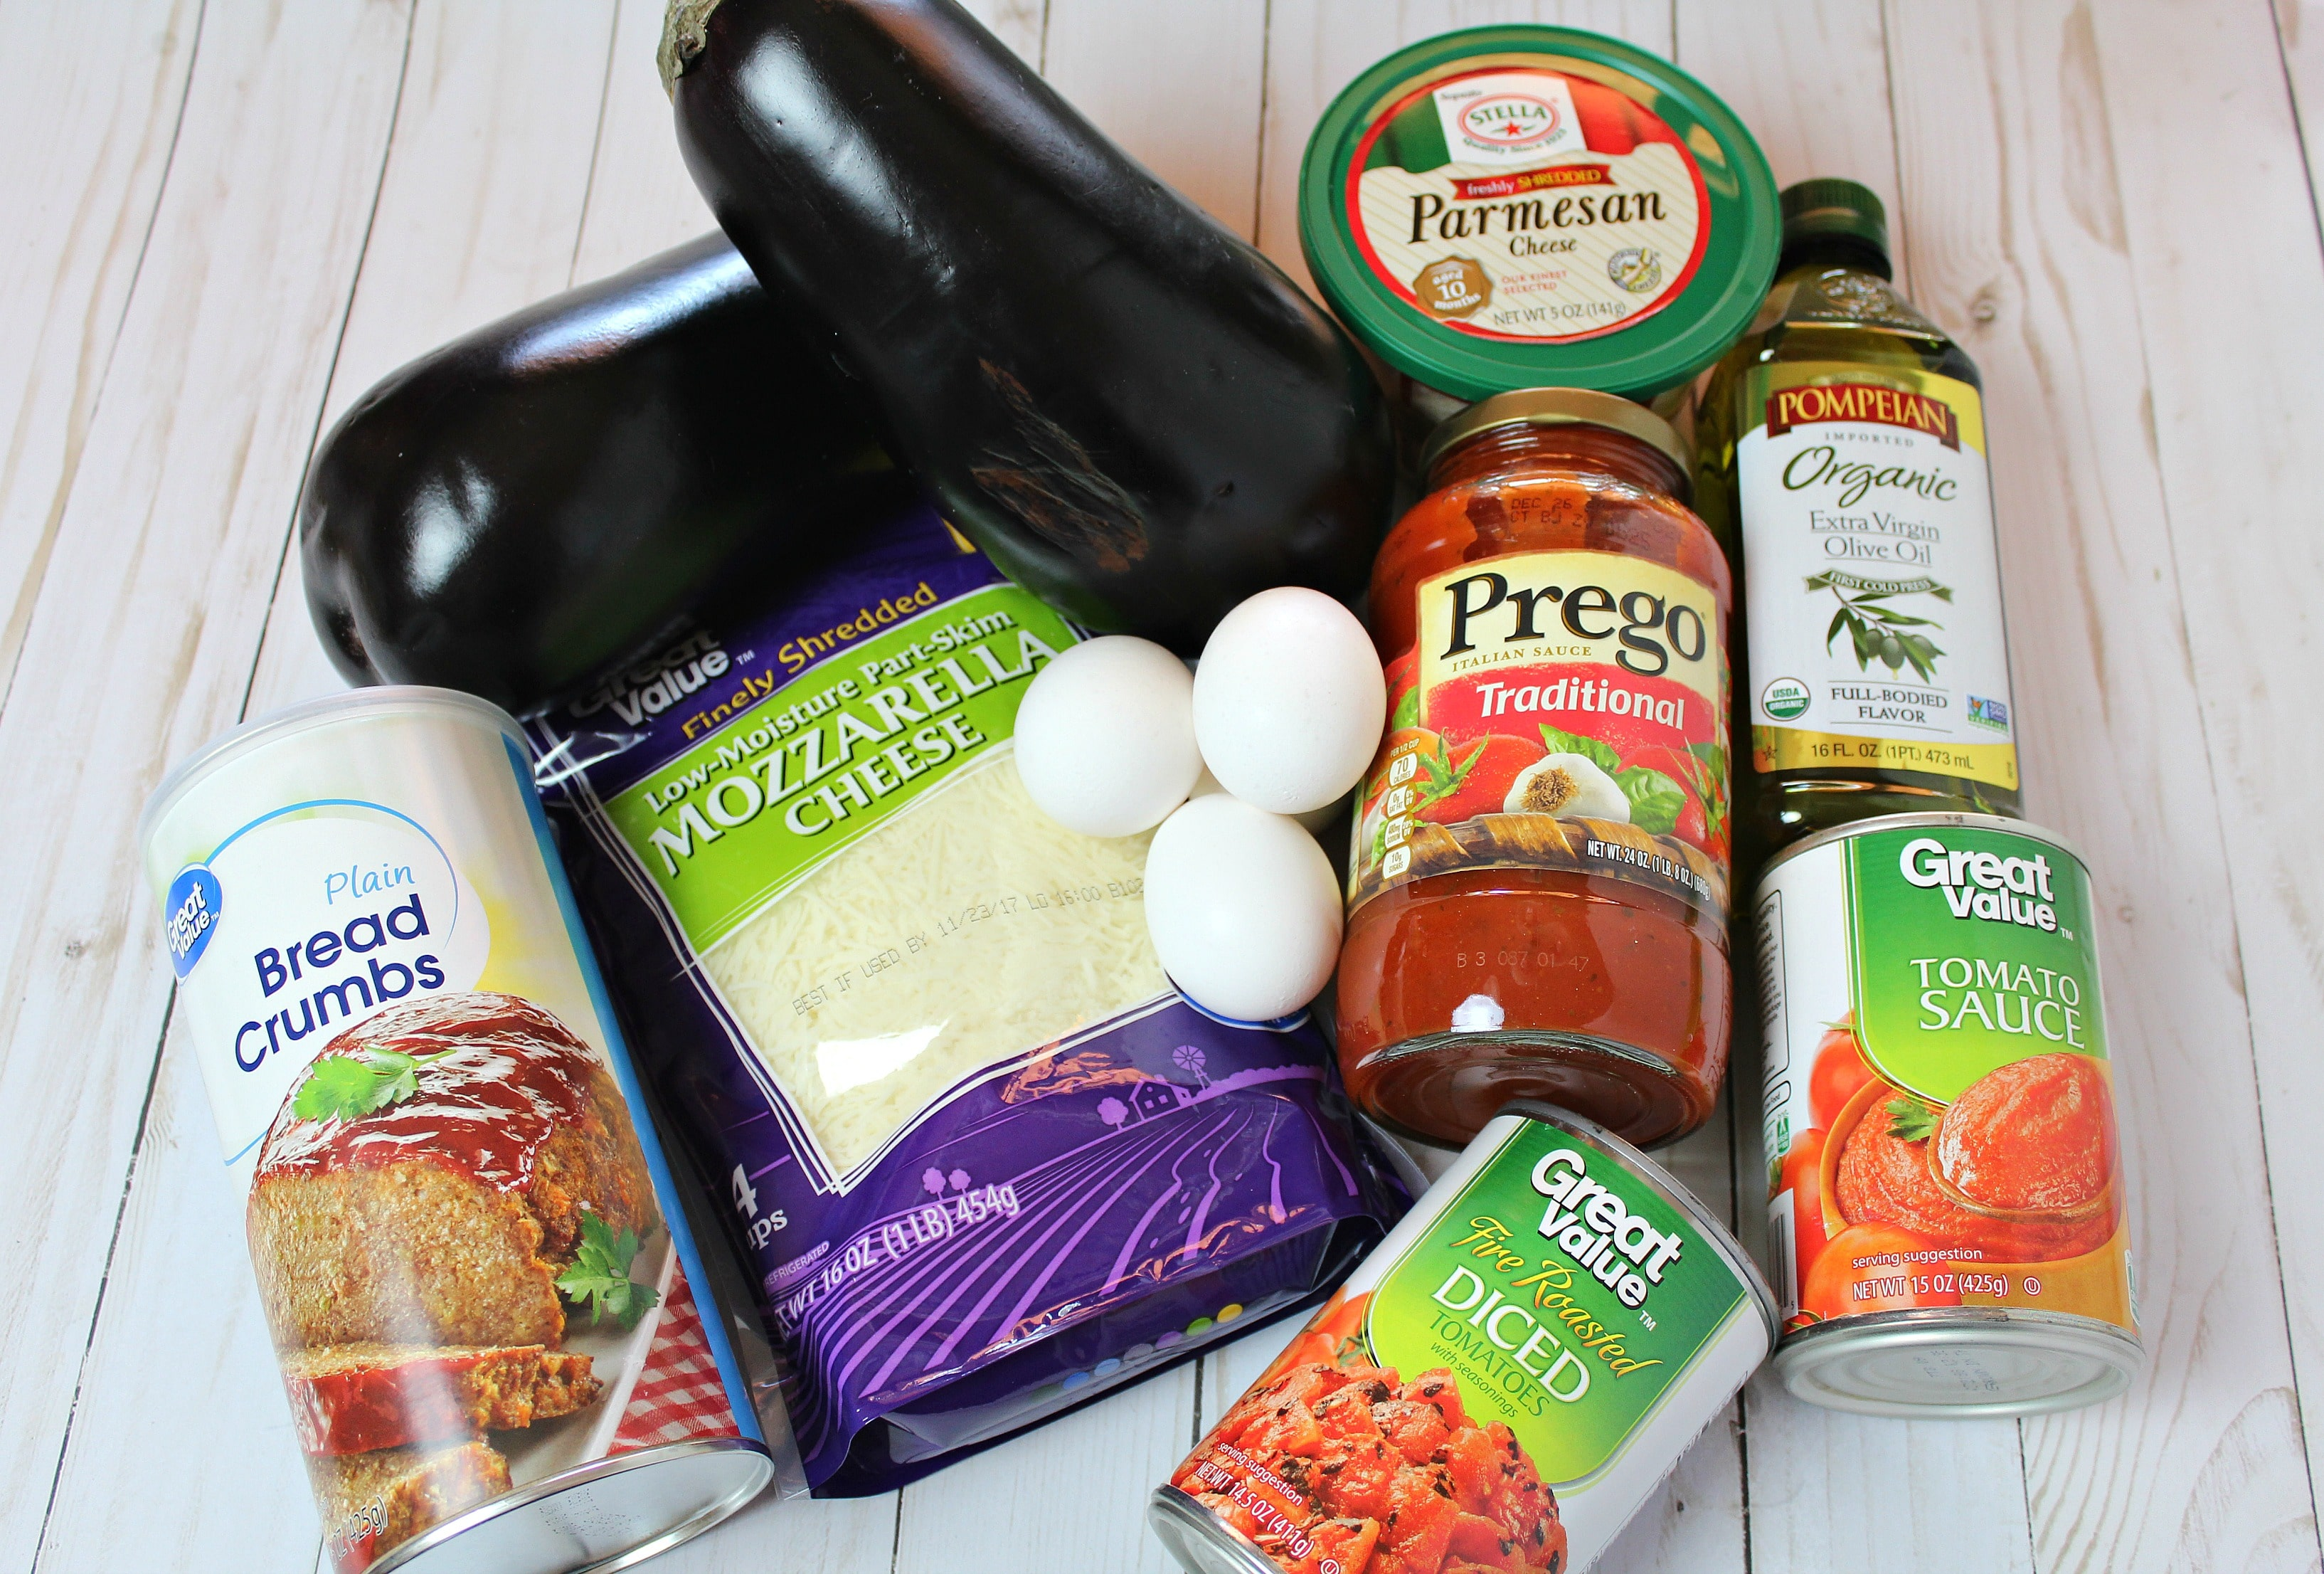 Assemble your ingredients: eggplants, eggs, seasoned dry bread crumbs, olive oil, cooking spray, spaghetti sauce, tomato sauce, fire roasted diced tomatoes, shredded mozzarella cheese, Parmesan cheese and salt.